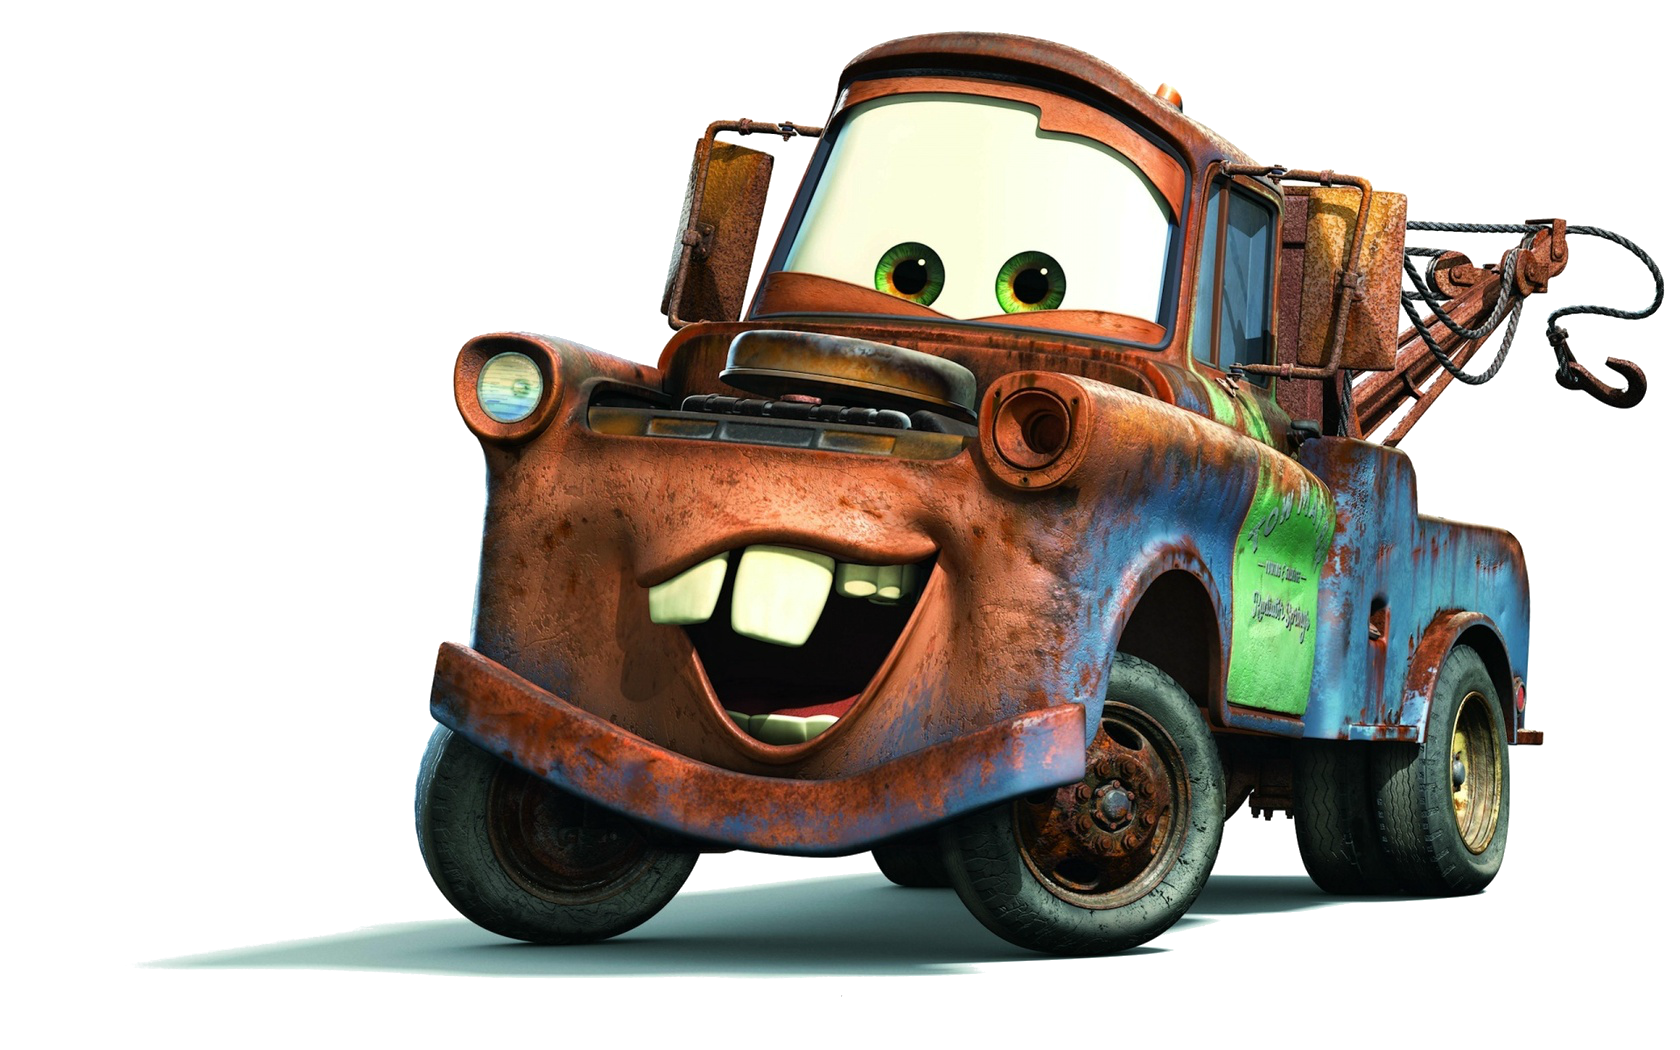 Lightning mcqueen cars cartoon. Mater drawing image transparent